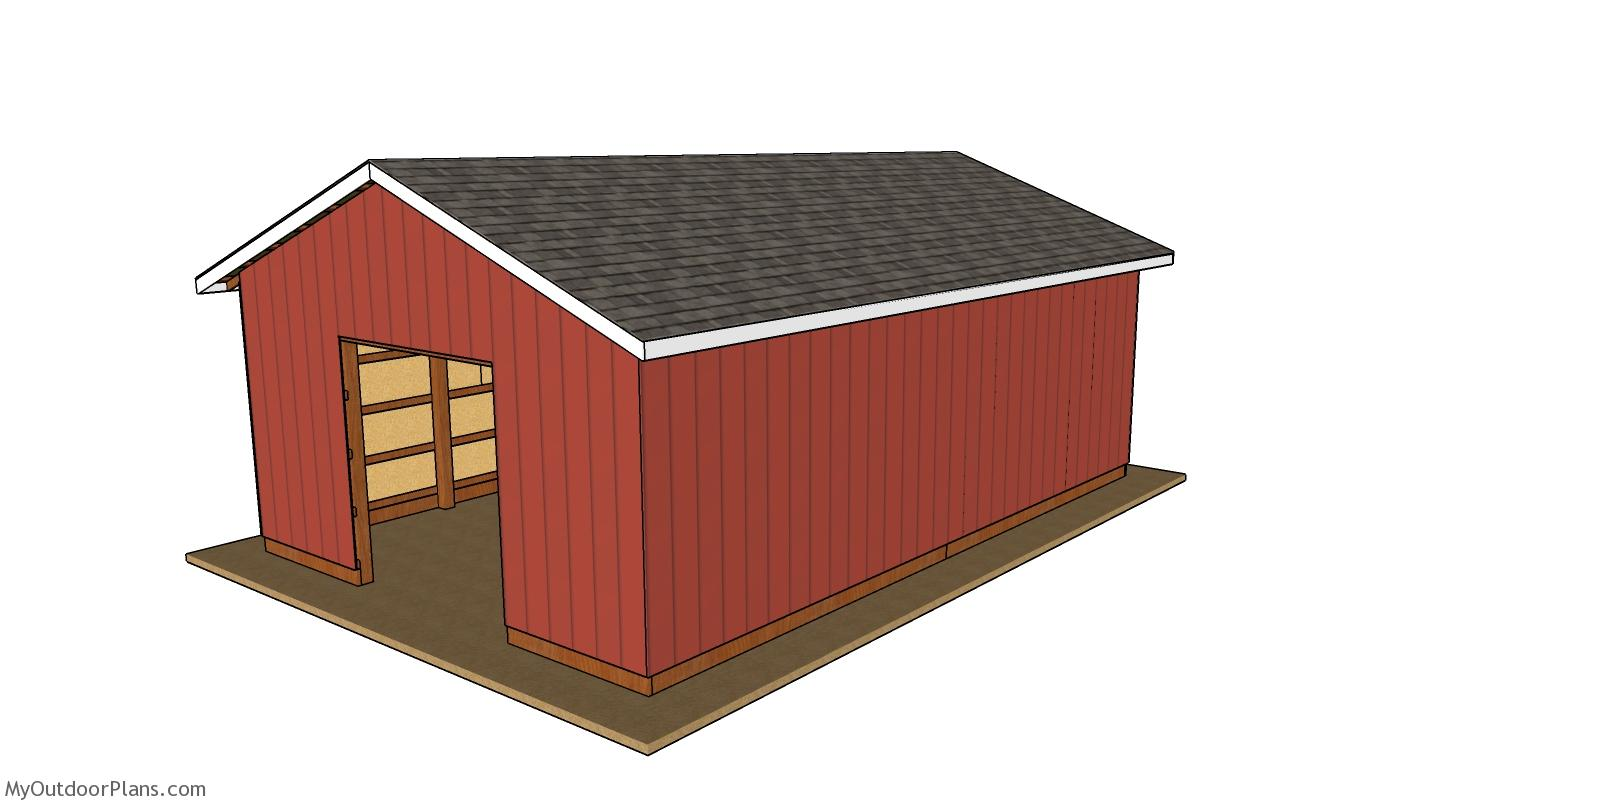 20x30 Pole Barn - Free DIY Plans